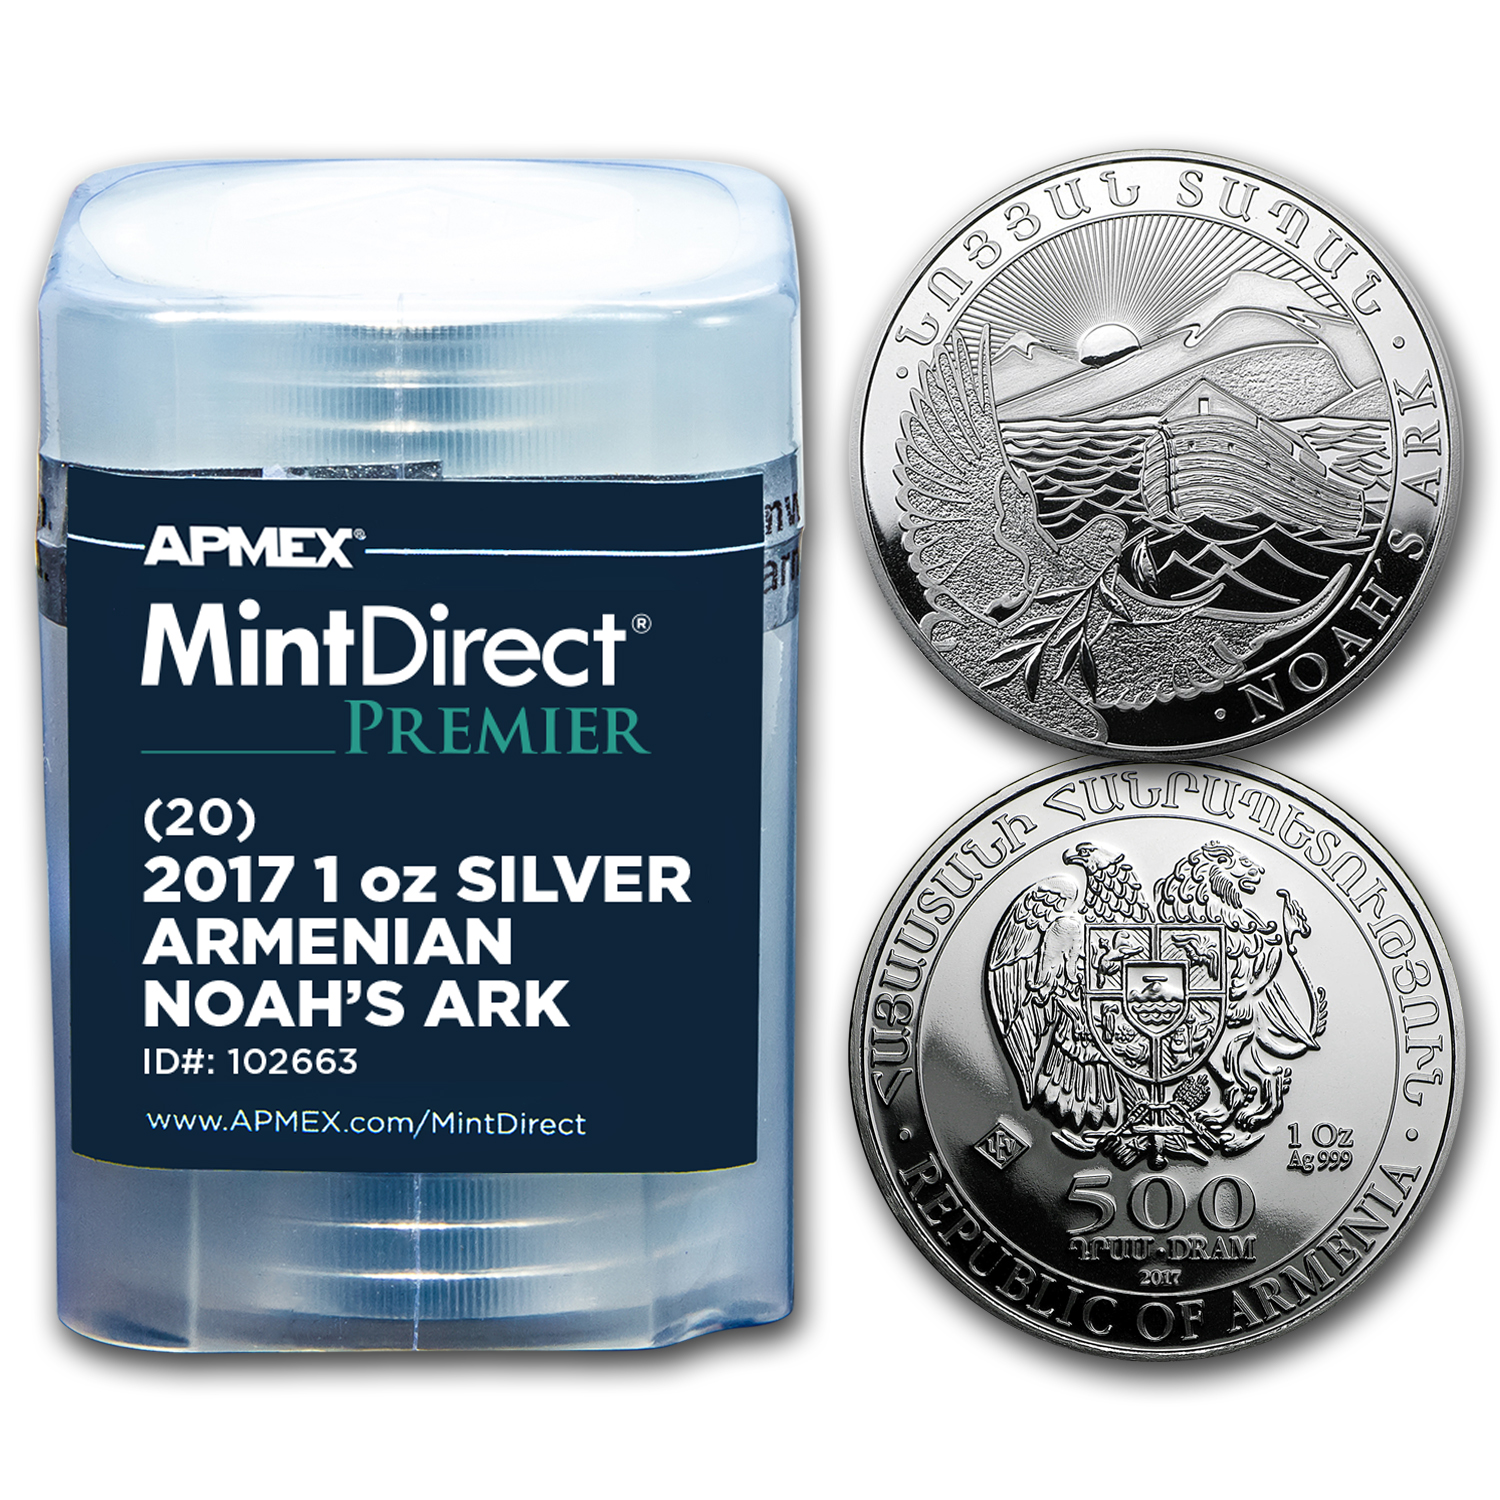 2017 Armenia 1 oz Silver Noah's Ark (MintDirect® Premier Tube)